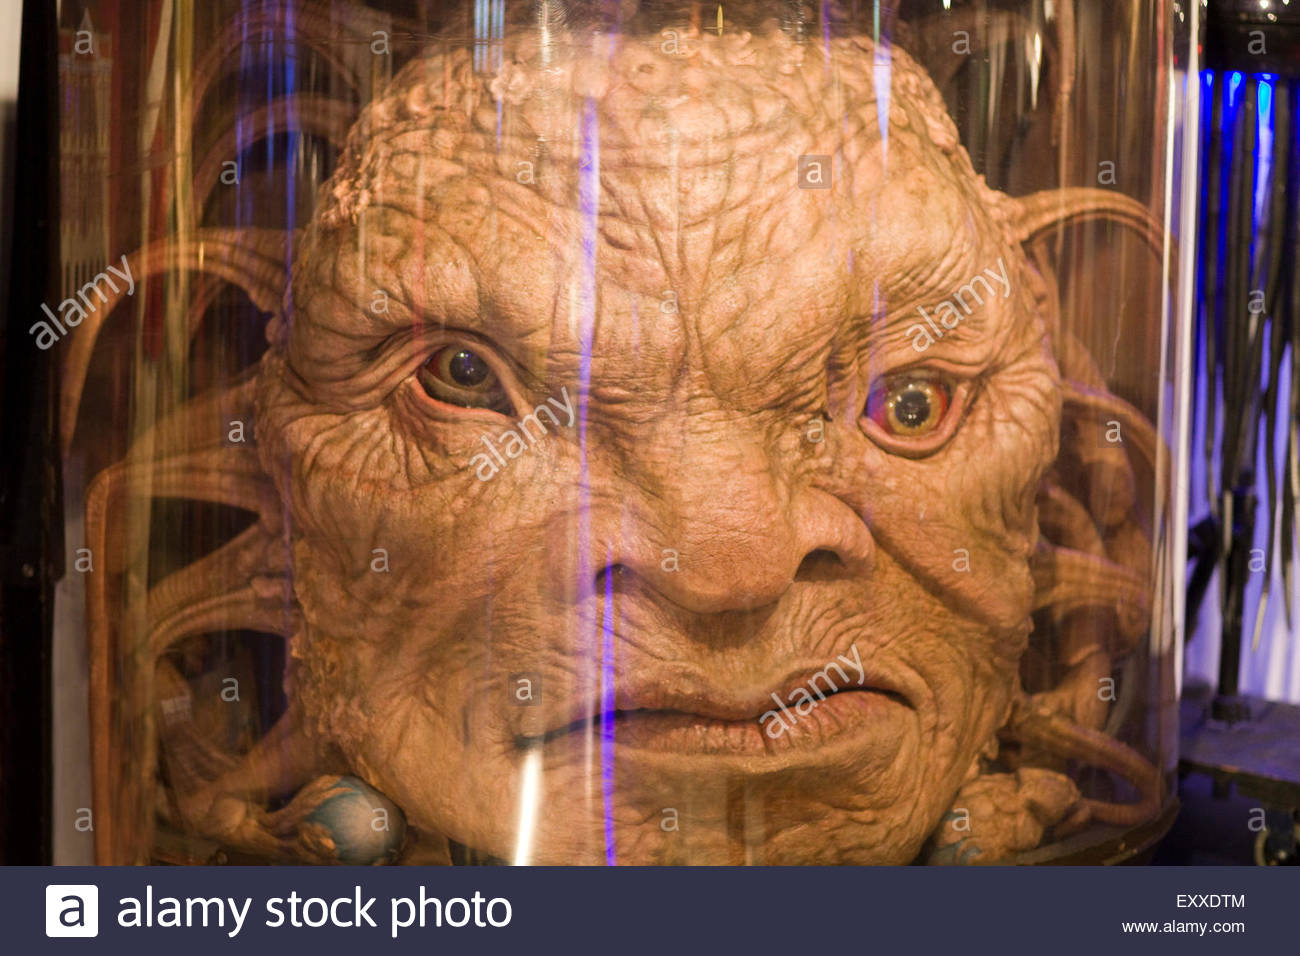 The Face of Boe Monster from the Cult Television Series Doctor Who Stock Photo